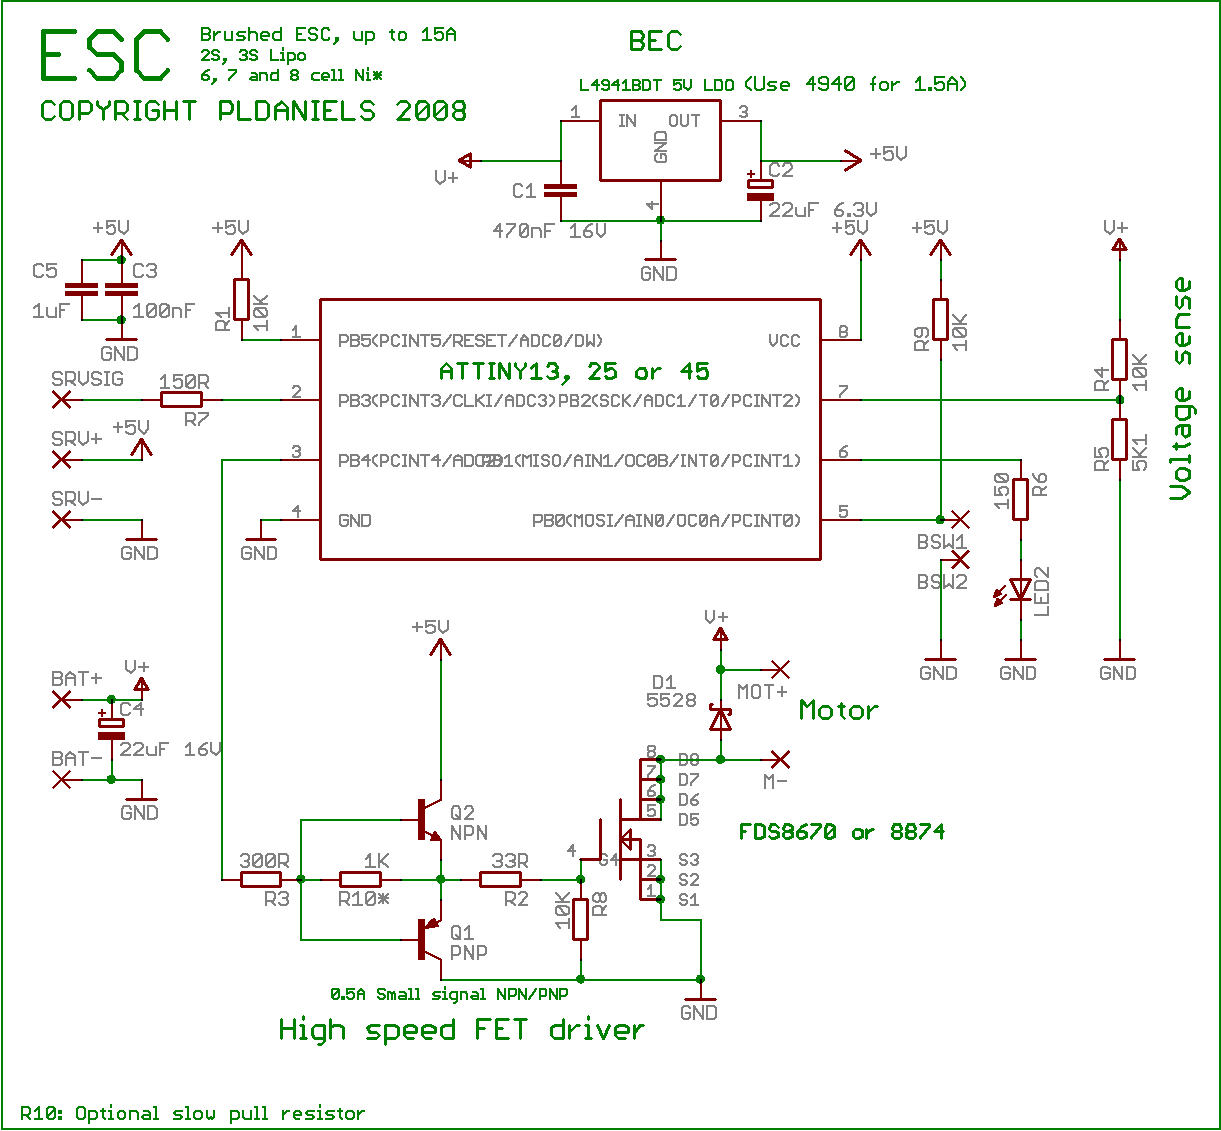 Attachment browser: PLD-ESC-RCG-004 png by Inflexo - RC Groups